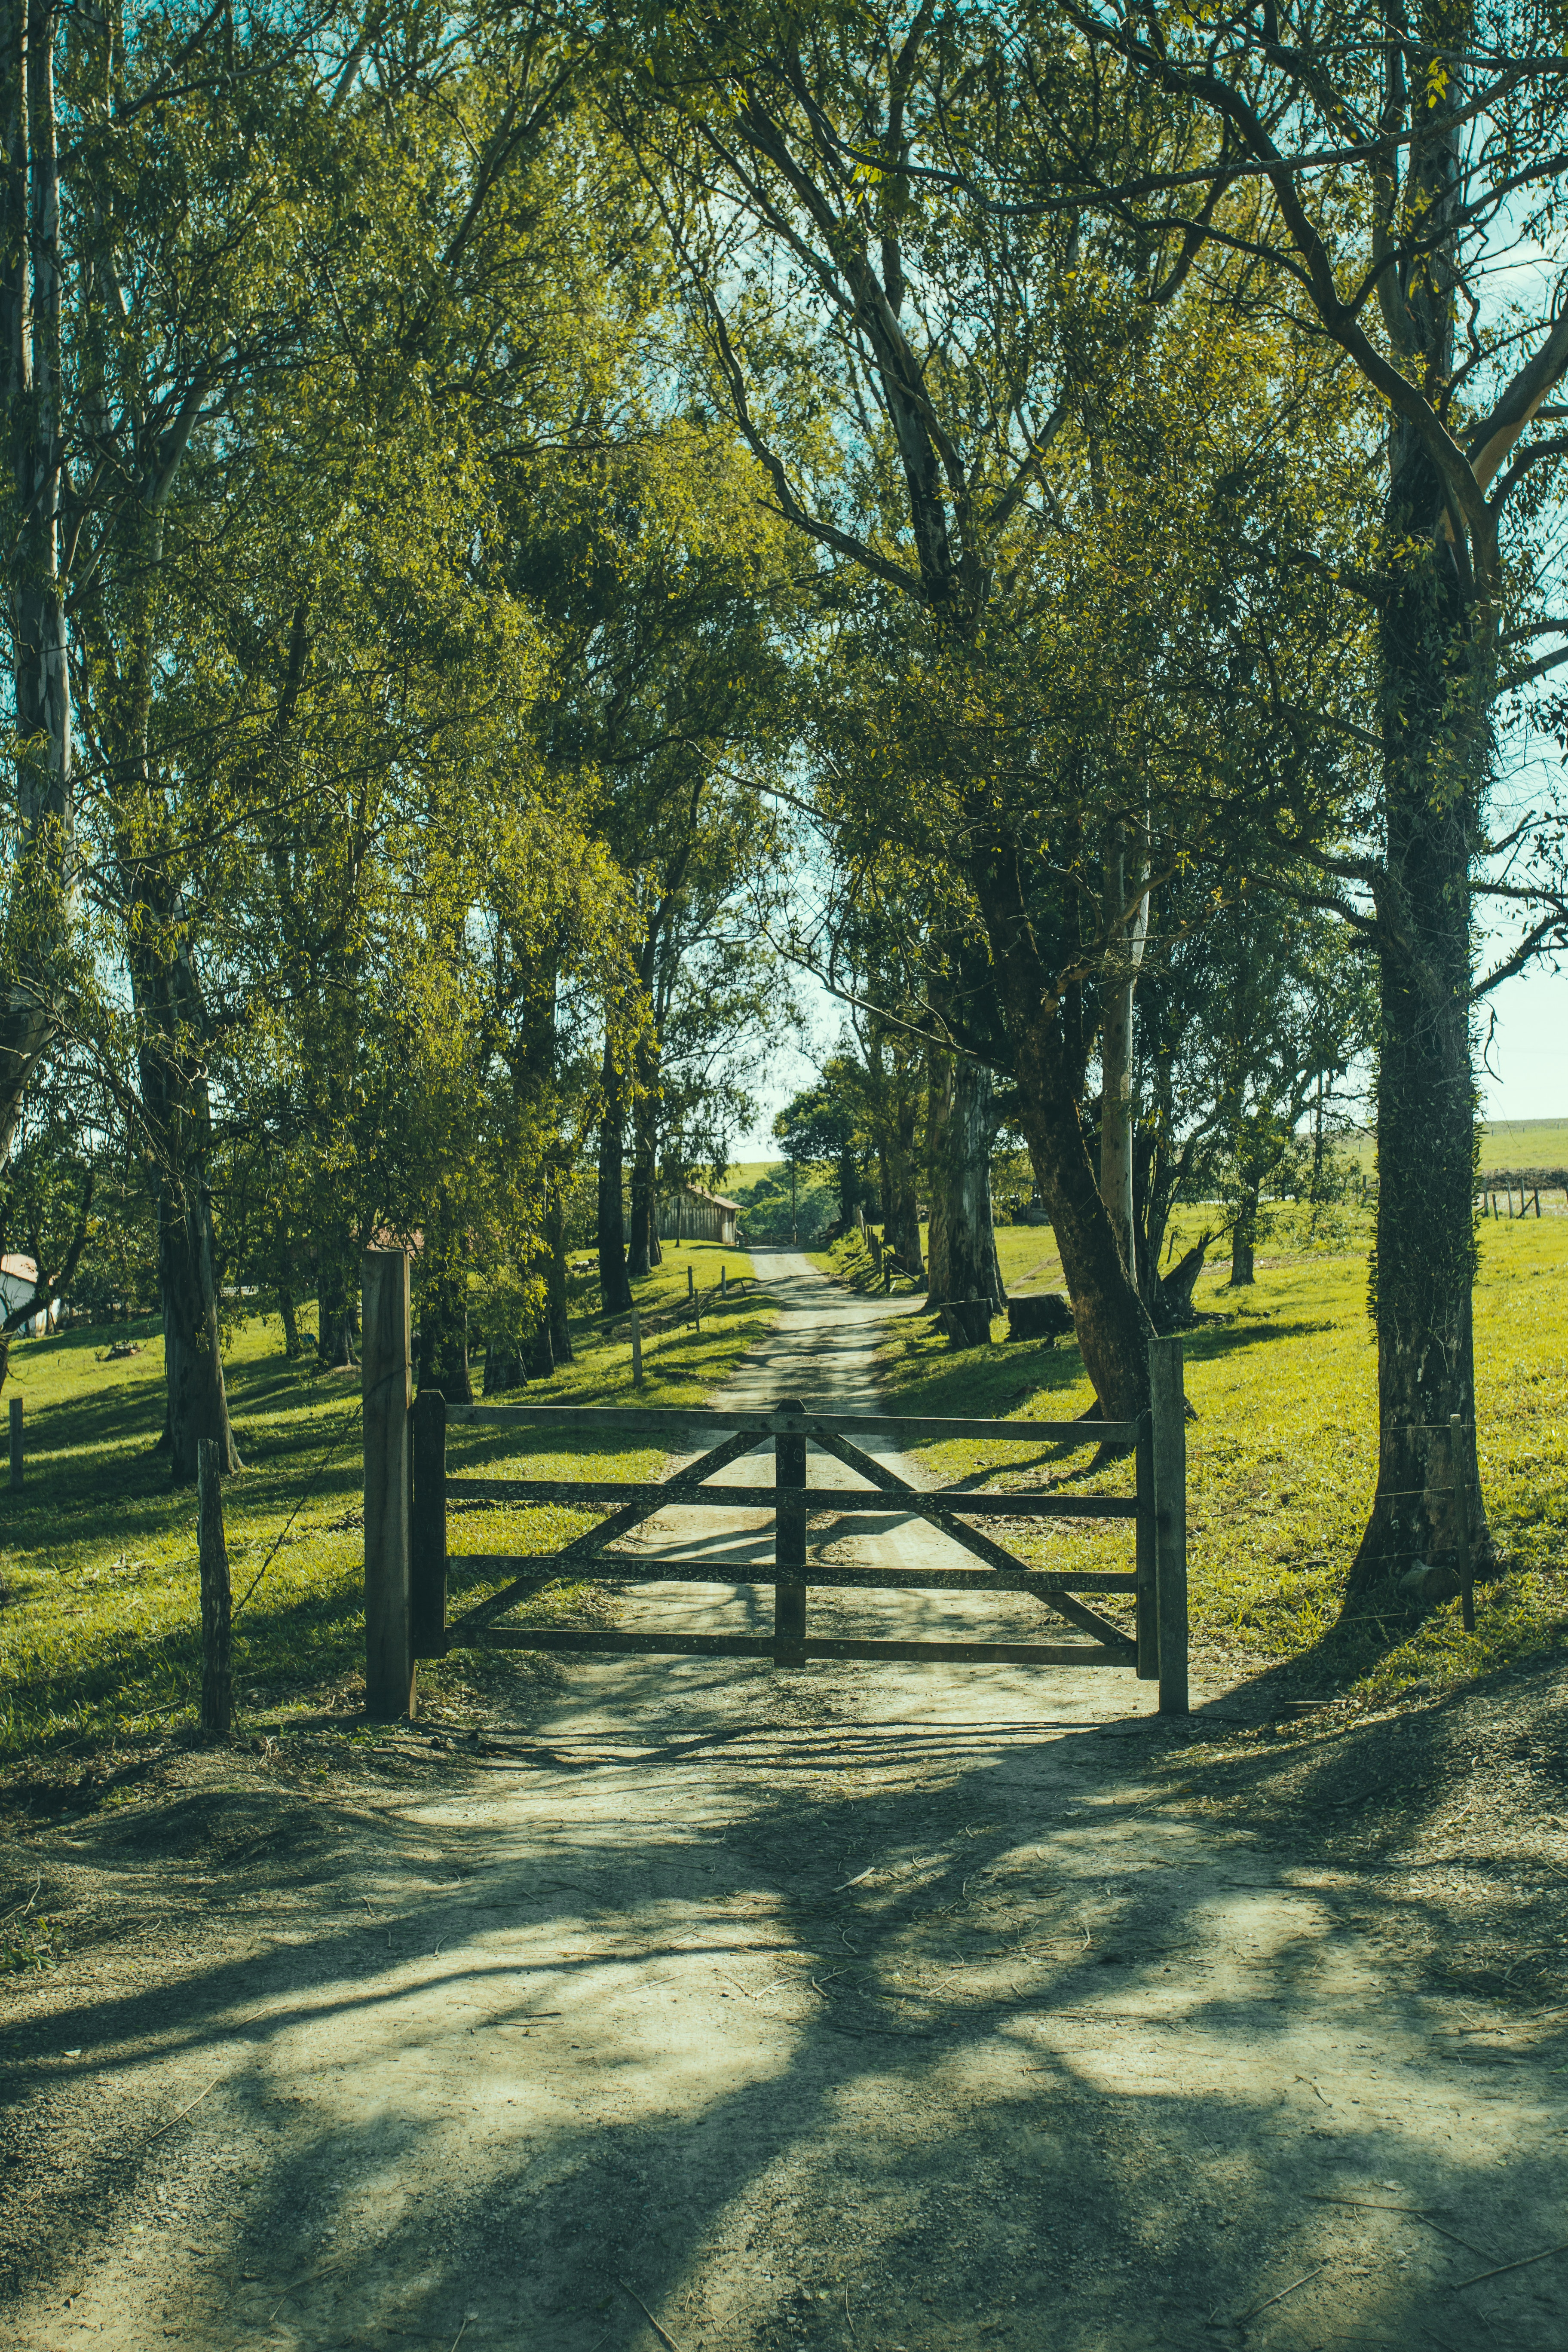 Road with fence in between of green trees photo